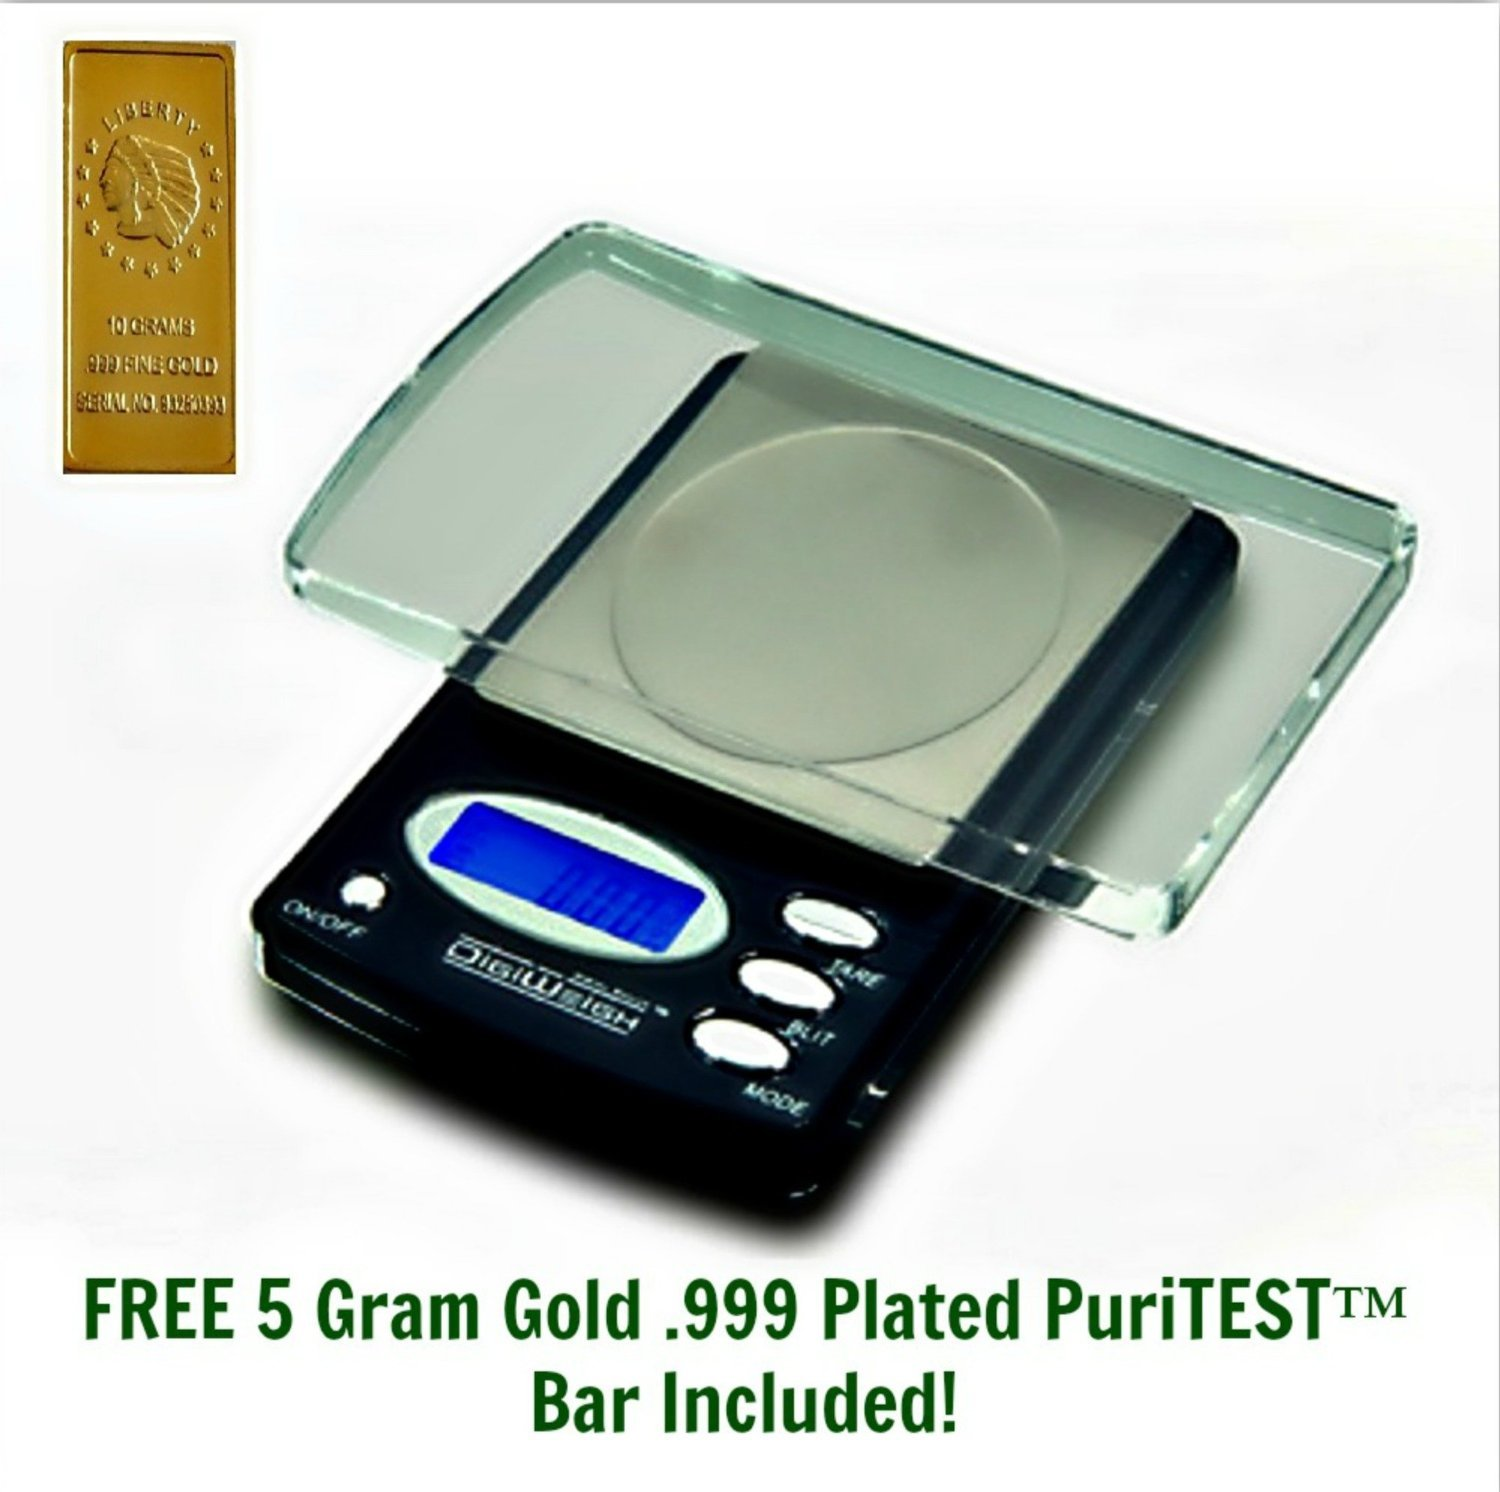 Classroom + Lab Equipment: New 100 x 0.01 Gram ELECTRONIC BALANCE + Calibration Weights! Digital Scale for Lab Chemicals, Lapidary Materials, Specimen & More! Weigh